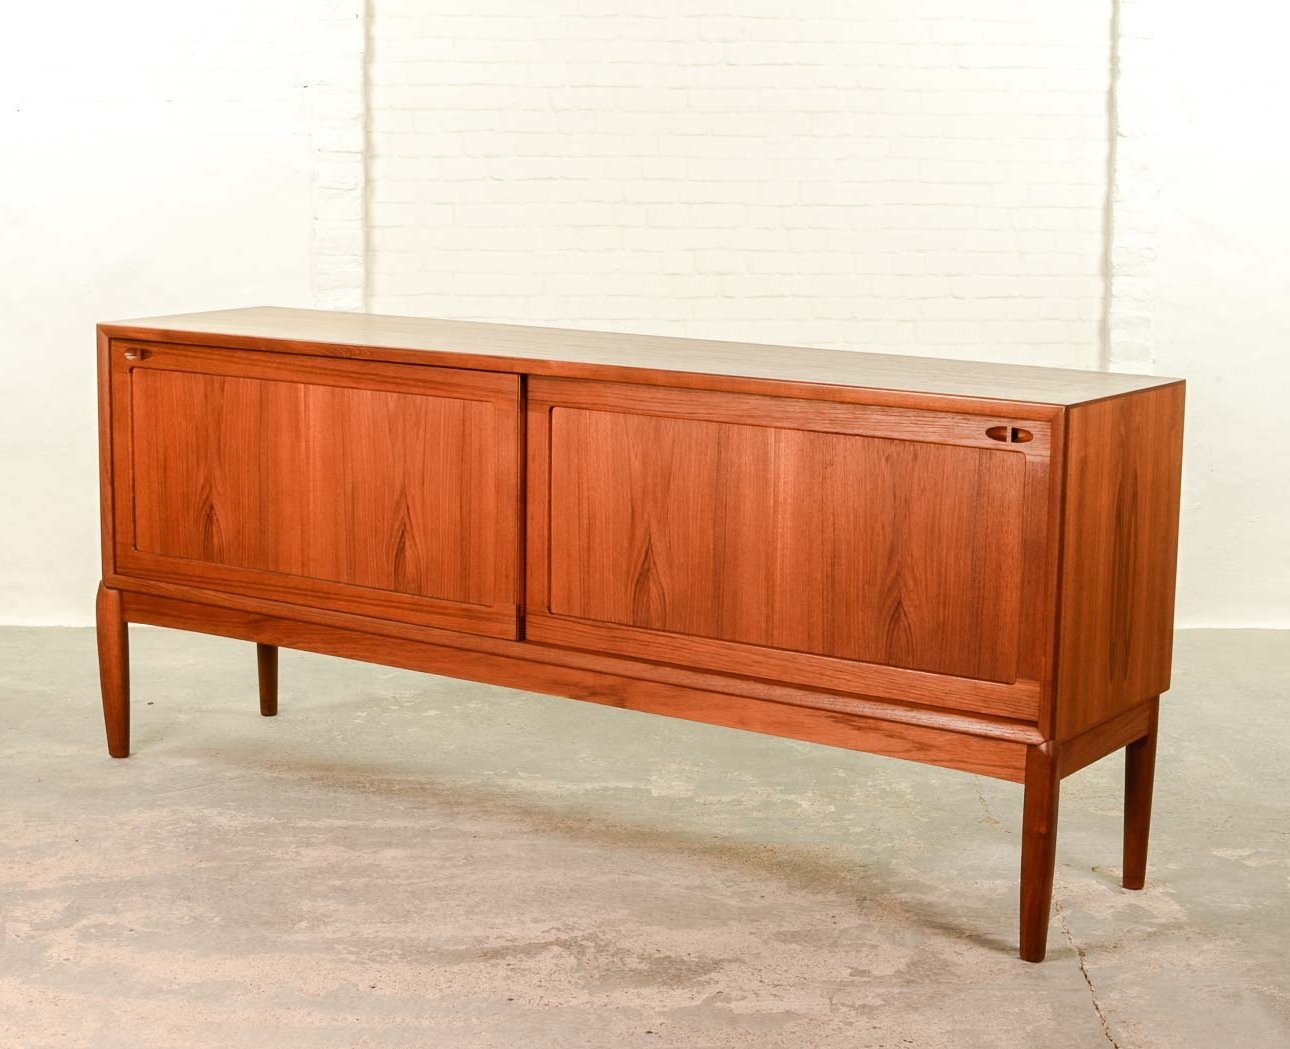 Danish Sideboard Credenza : Mid century danish low sideboard credenza by h.w. klein for bramin